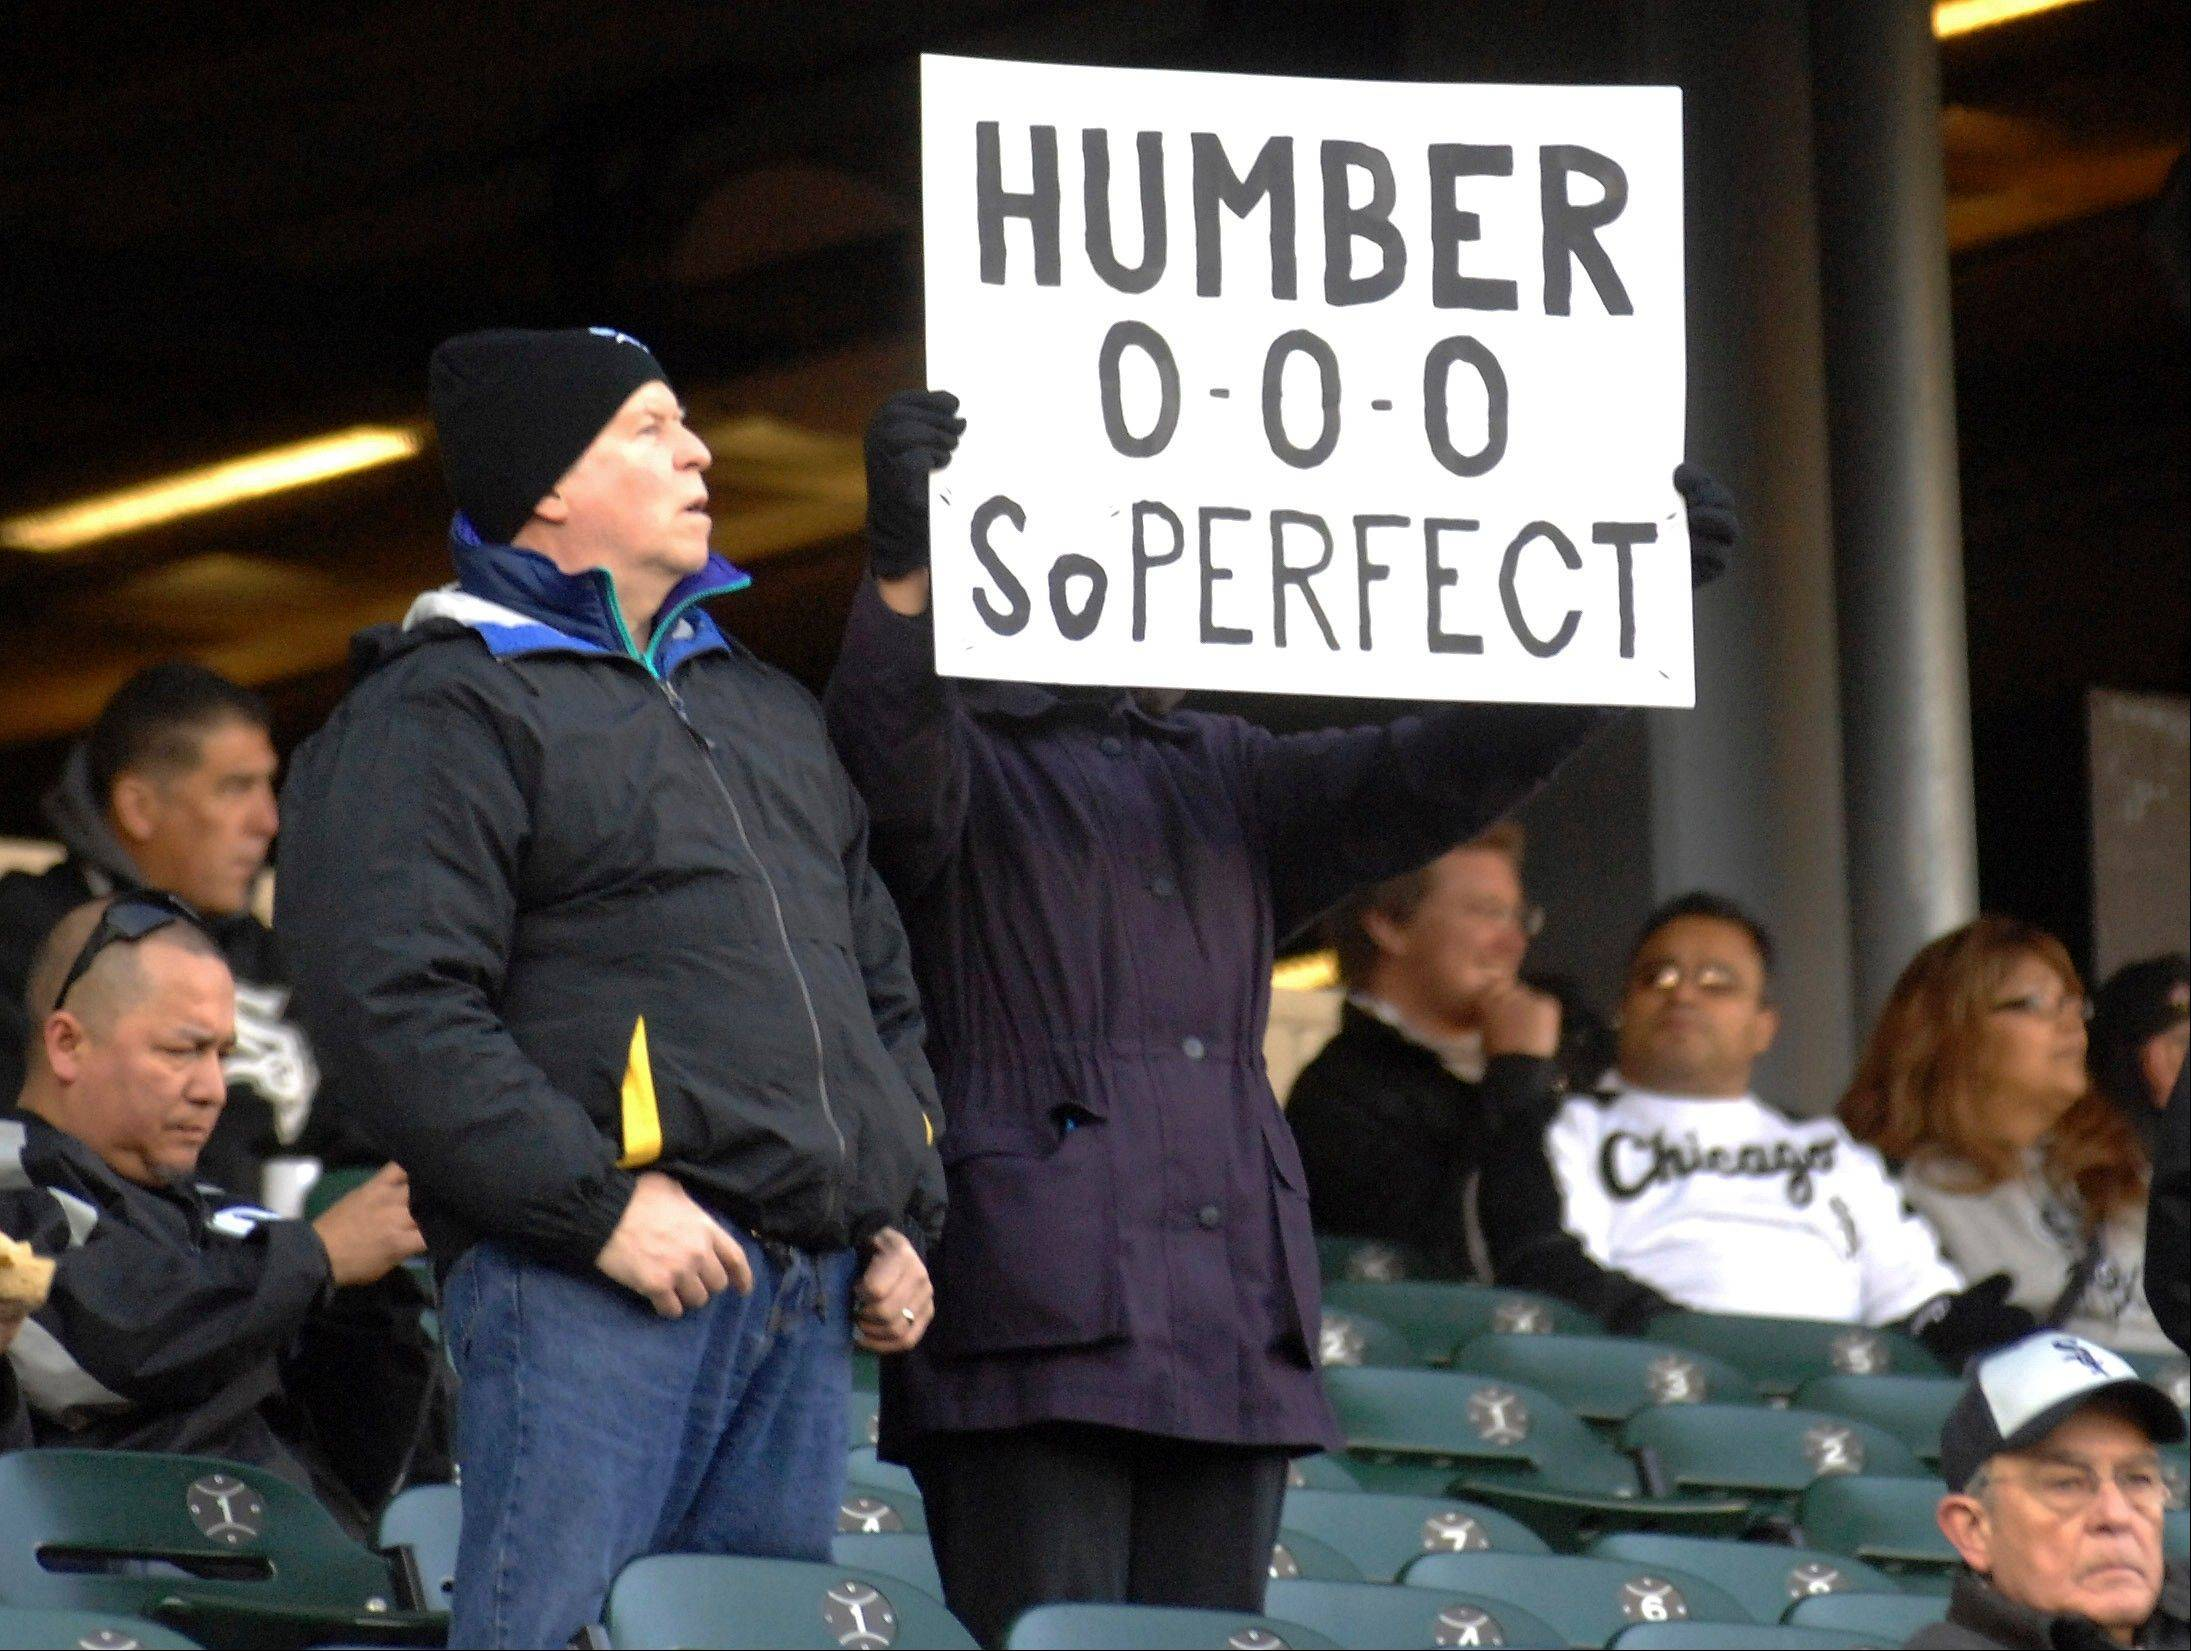 A fan holds up a sign honoring Chicago White Sox starting pitcher Philip Humber's recent perfect game, before the White Sox's baseball game against the Boston Red Sox on Thursday, April 26, 2012, in Chicago. The Red Sox won 10-3.